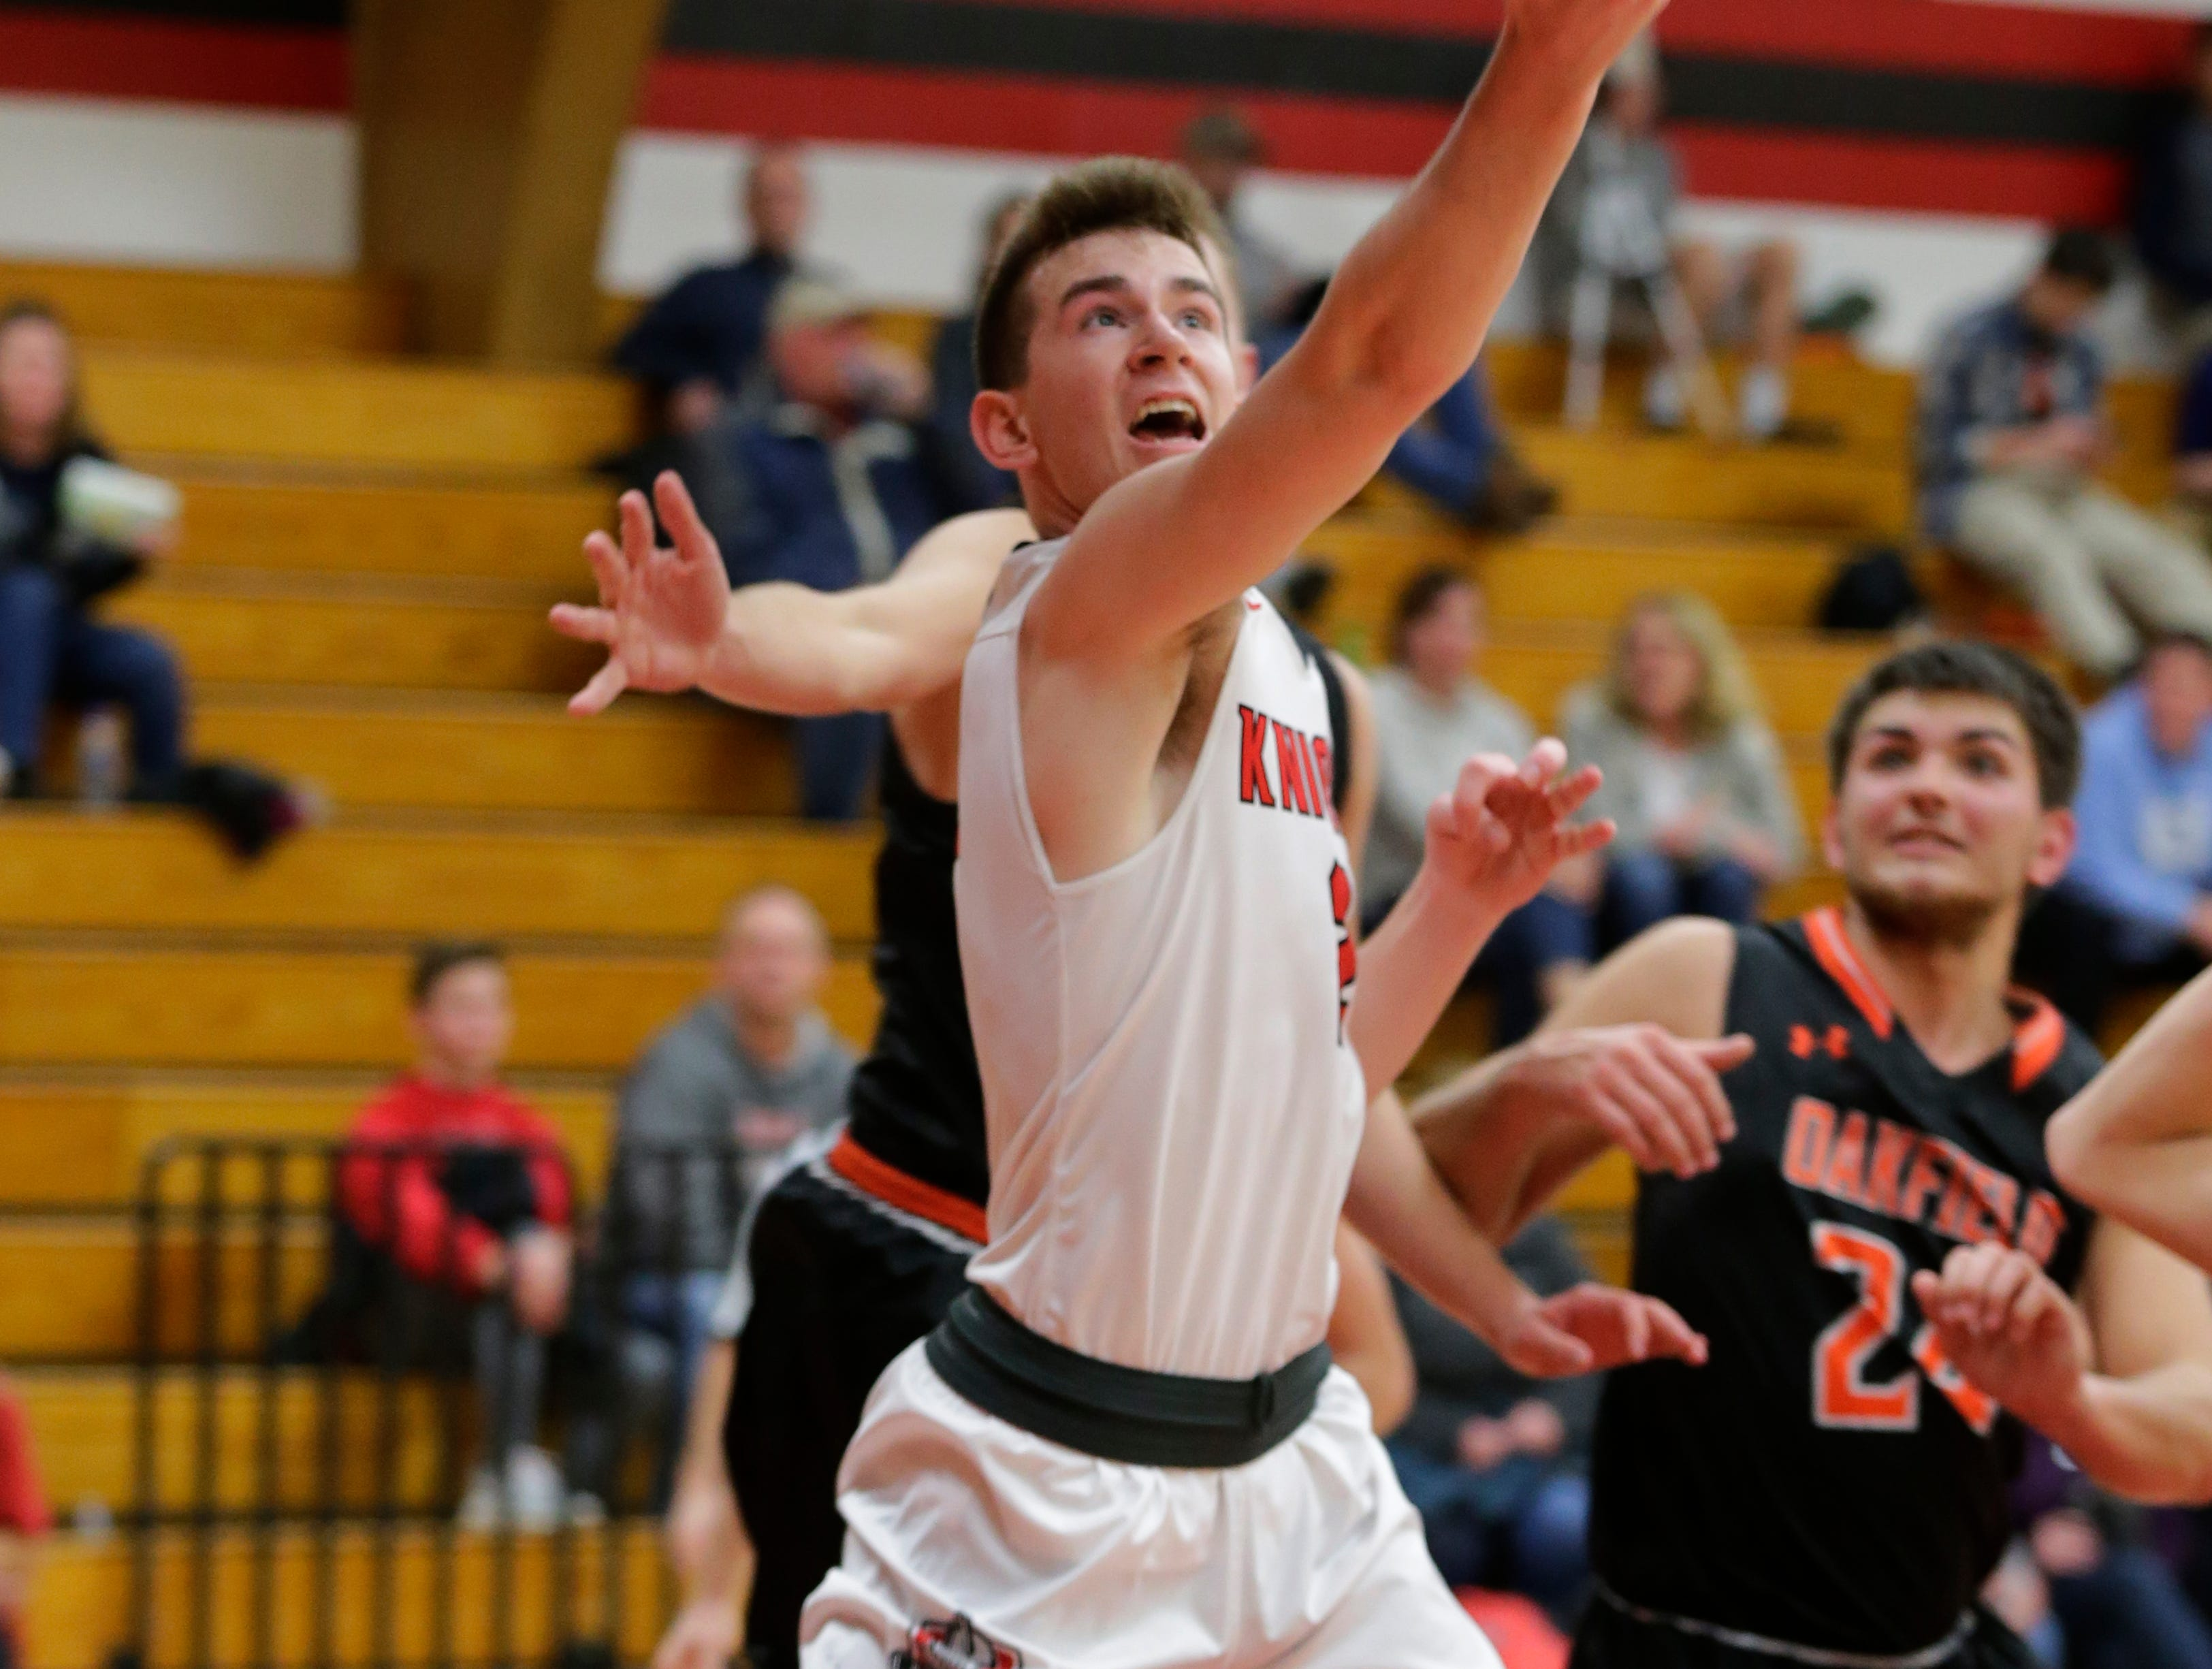 Lourdes Academy's Henry Noone goes in for a lay up.  Lourdes Academy Knights played Oakfield Oaks in boys basketball Tuesday, Dec. 4, 2018, at Lourdes Castle in Oshkosh, Wis.